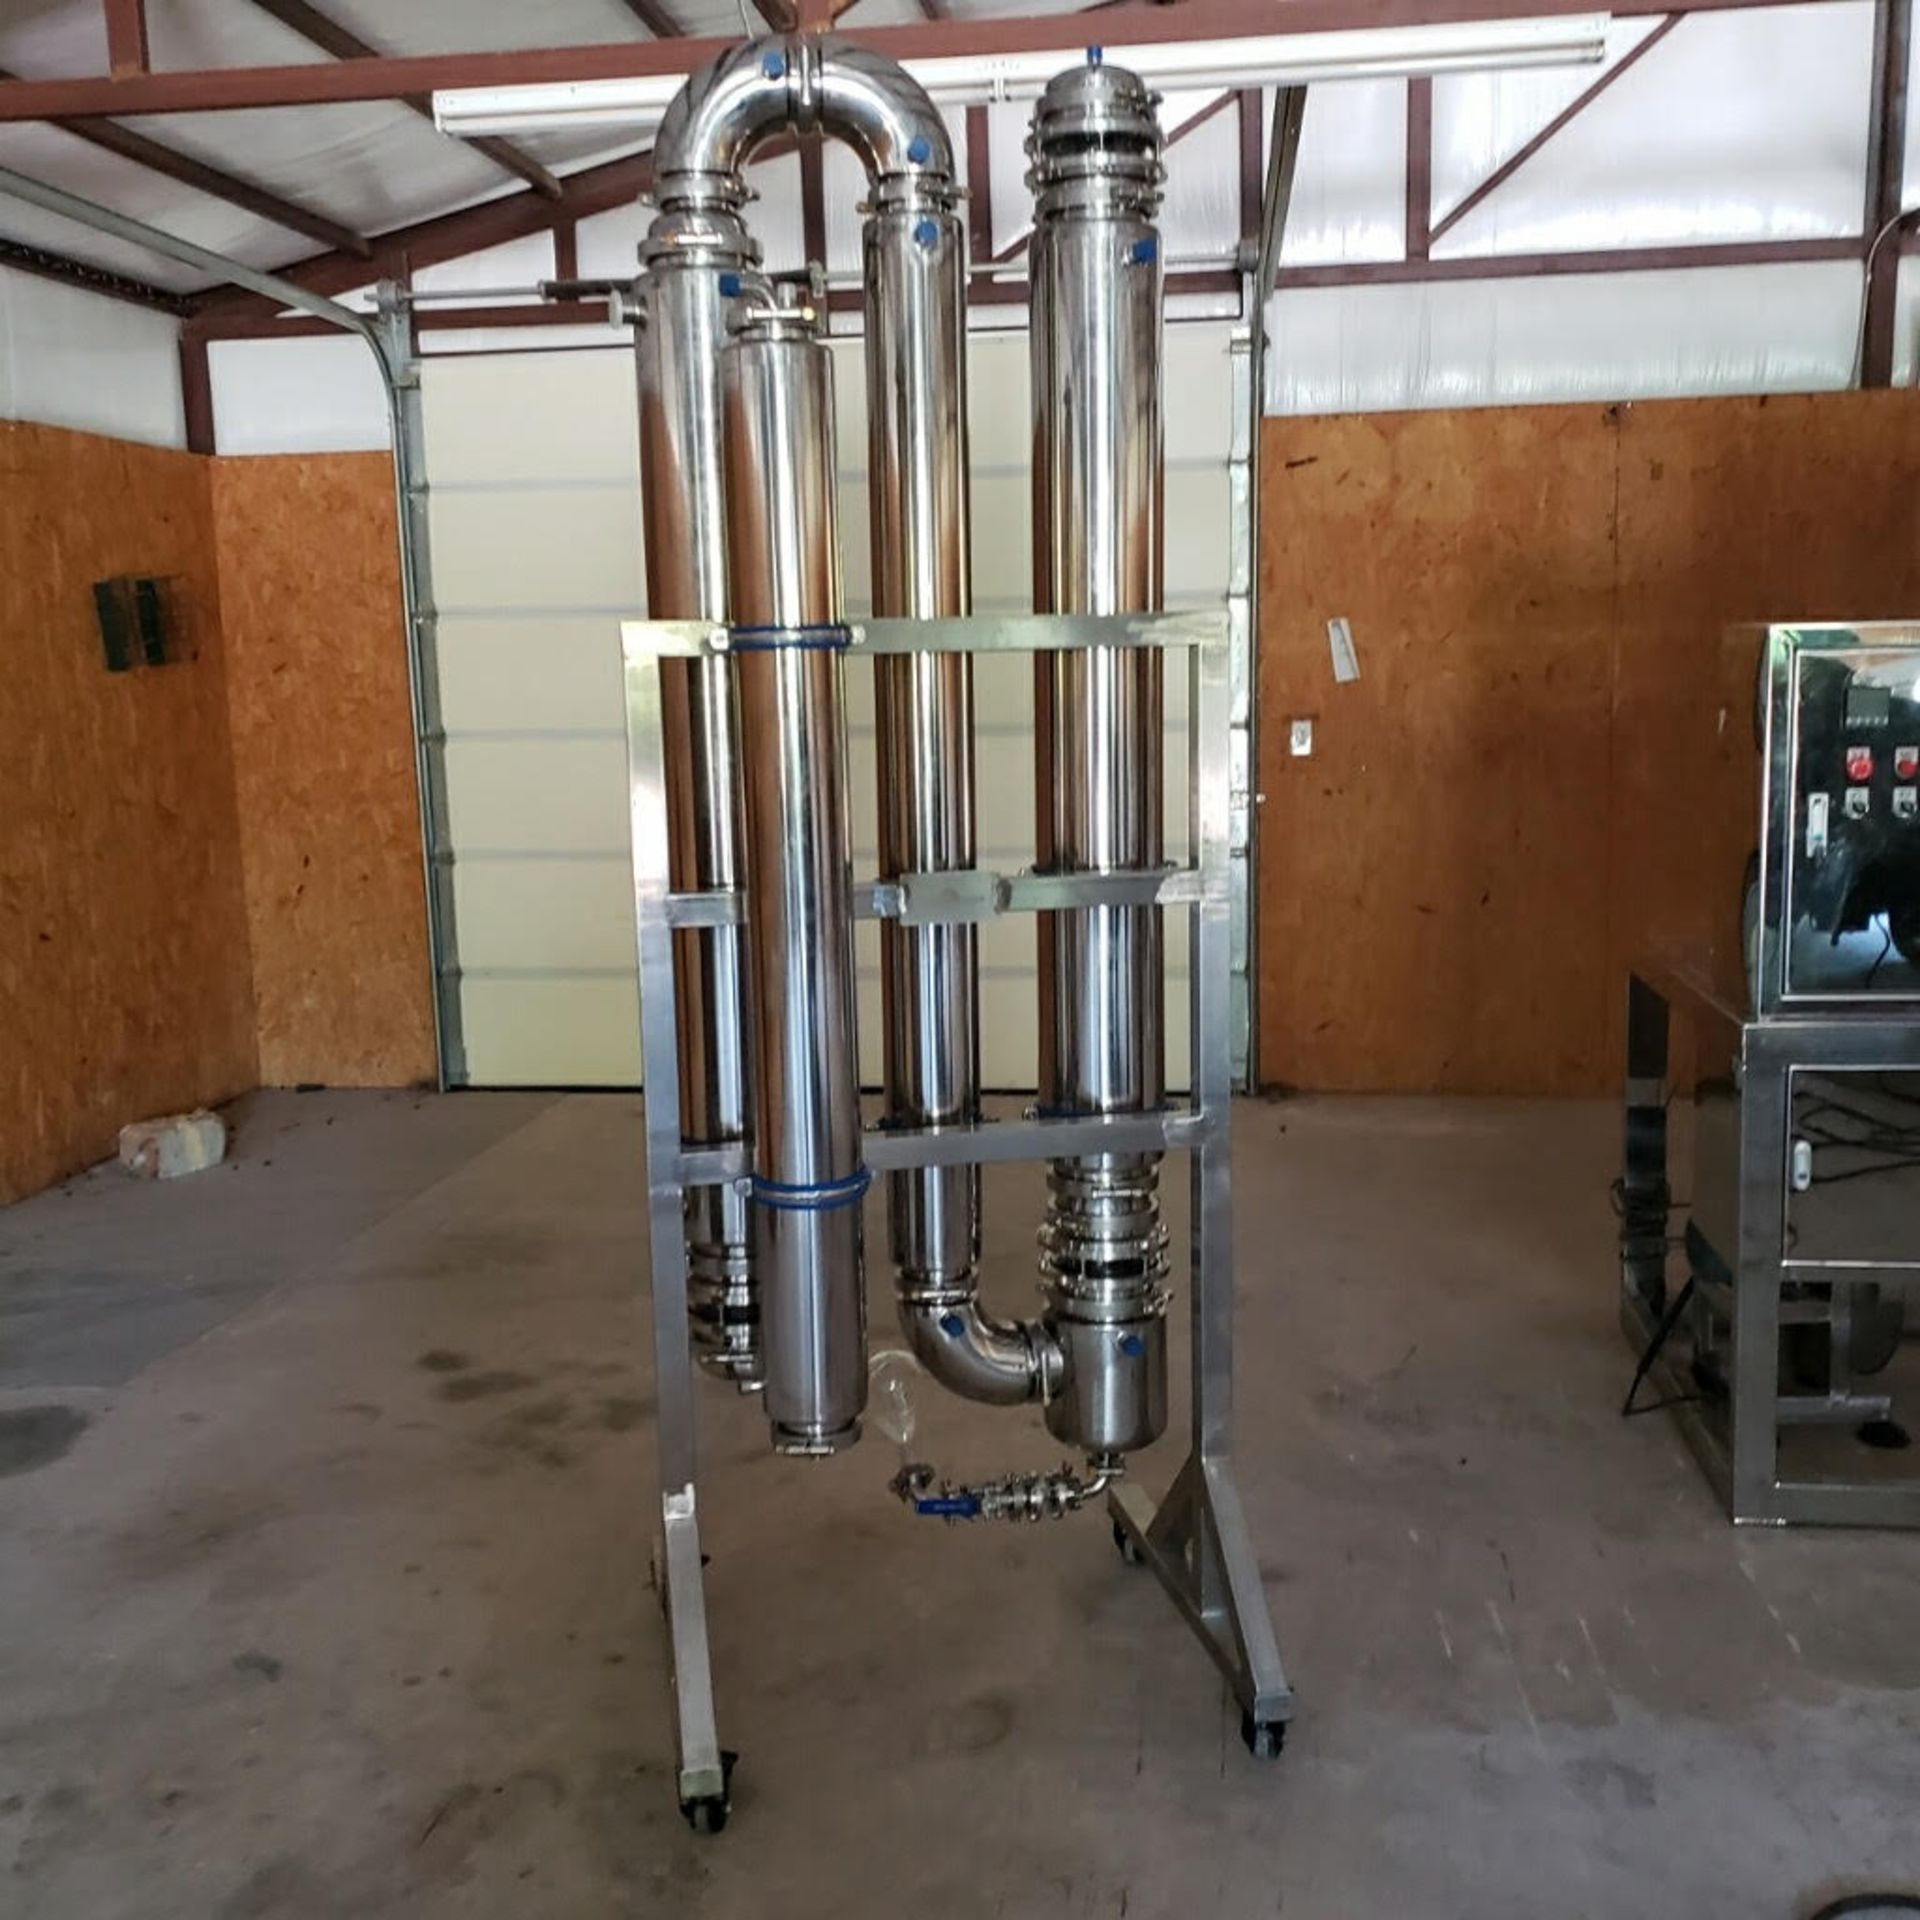 UNUSED/TESTED ONLY- K Trading Co. Ethanol Distillation & Recovery System. Model LPG5. 35-45 Gal/hr - Image 2 of 4